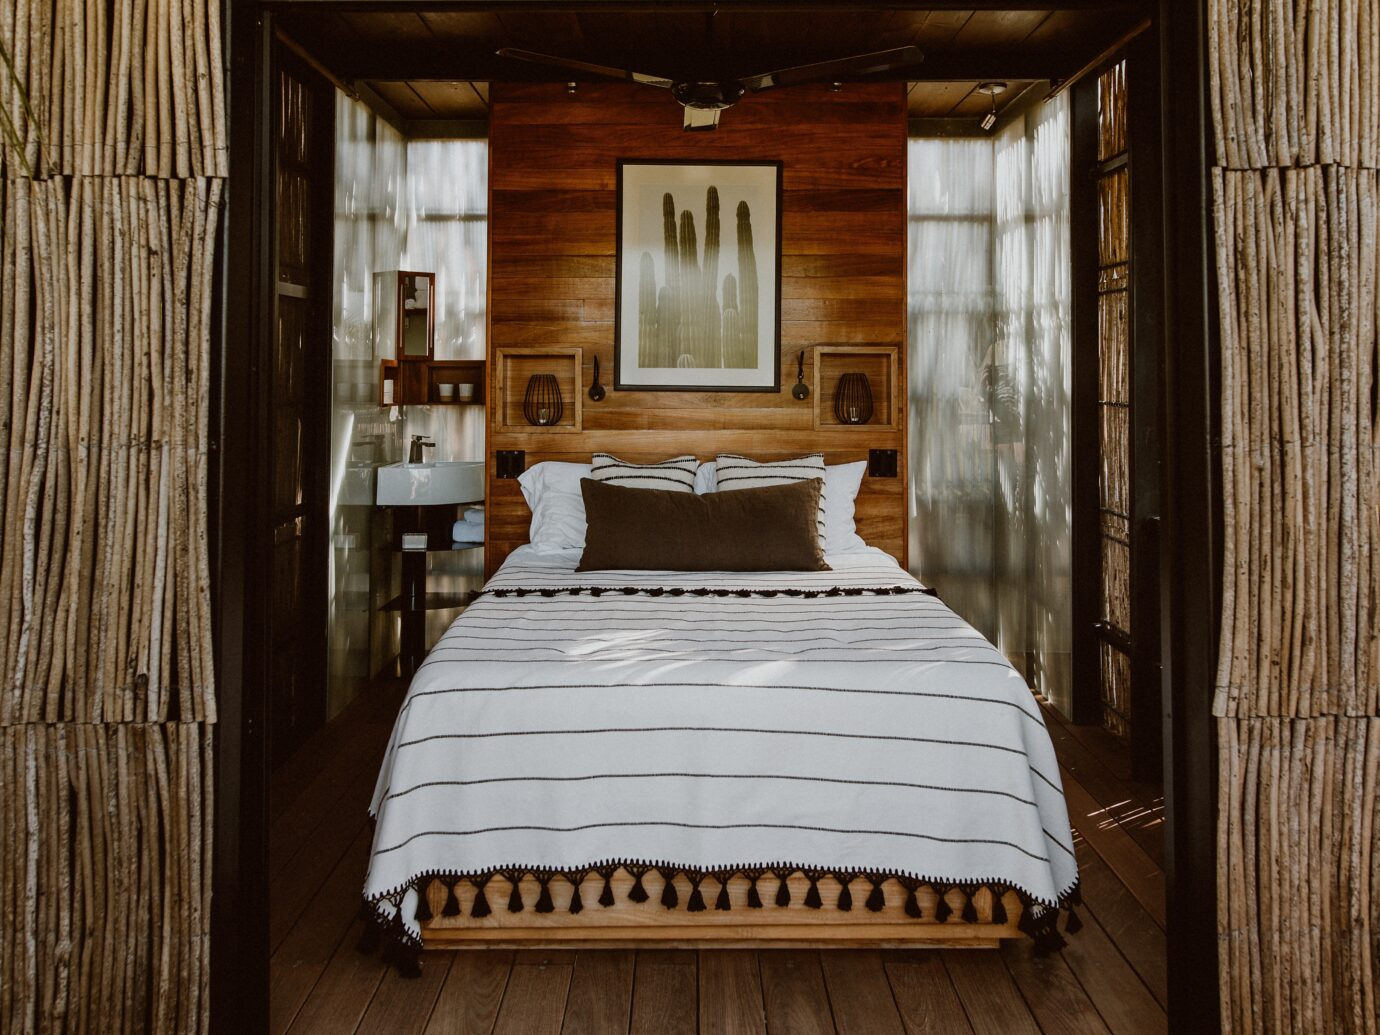 Bedroom at Acre in Baja California